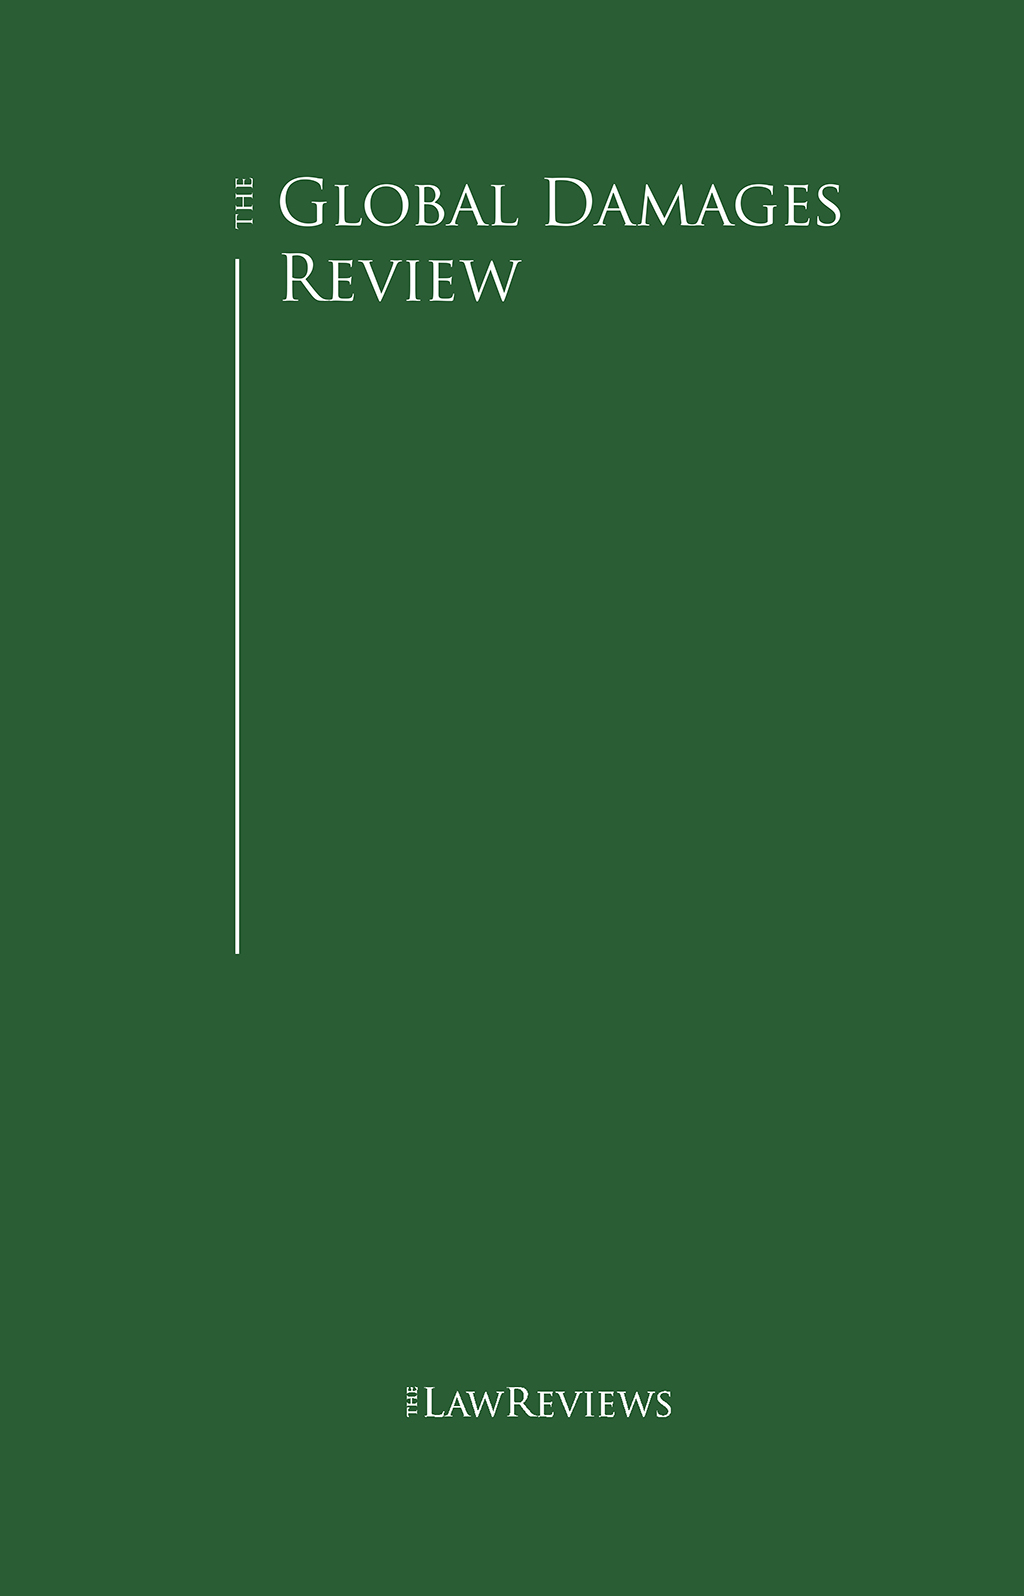 The Global Damages Review